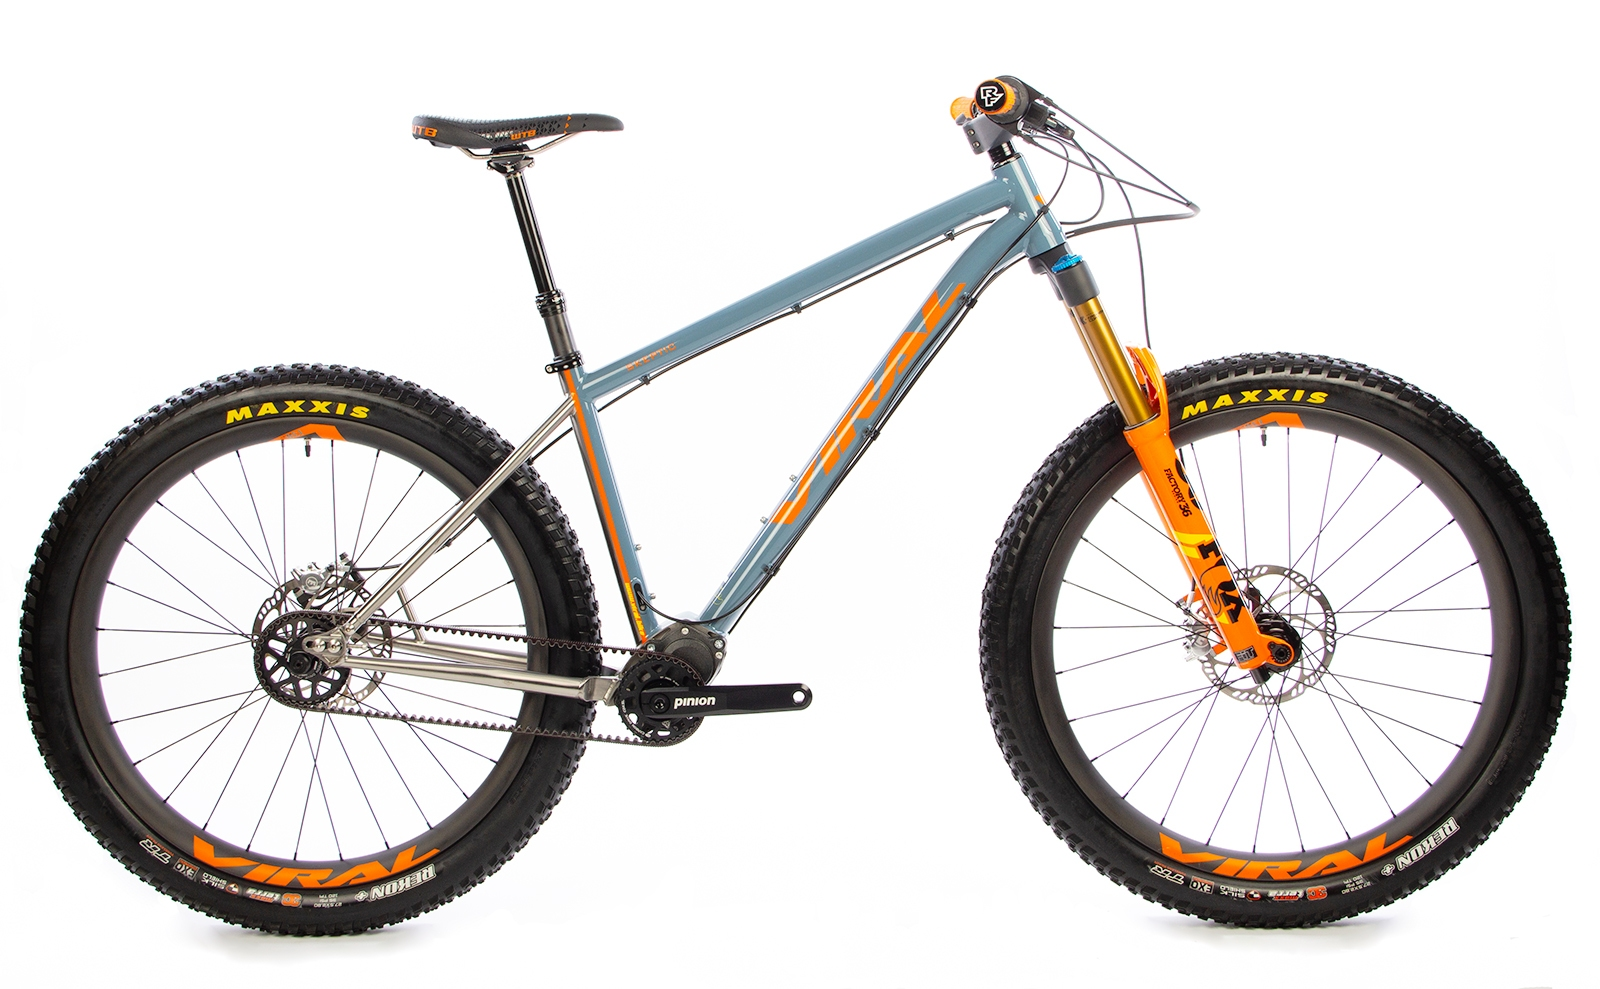 The Viral Skeptic, a gearbox enduro rig for Tahoe dirt